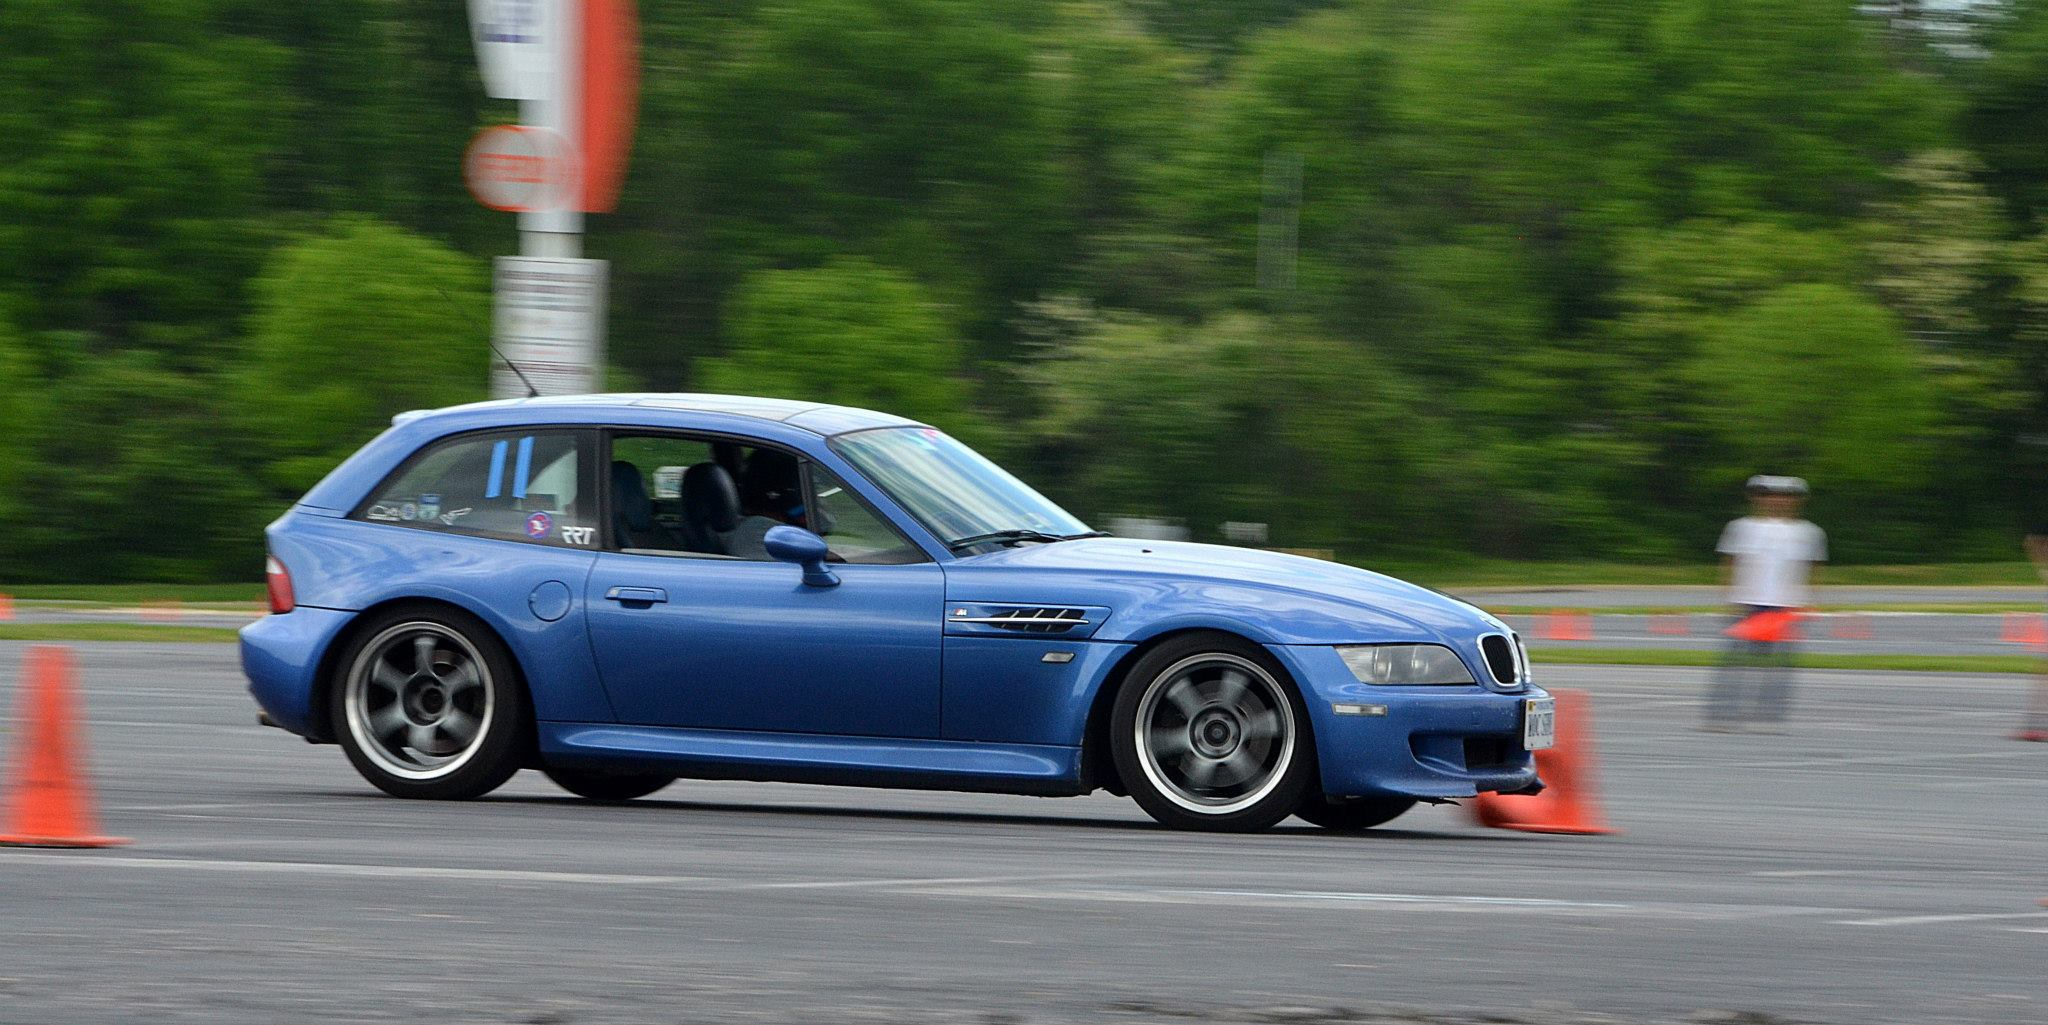 NCC Autocross - BMW Clownshoe